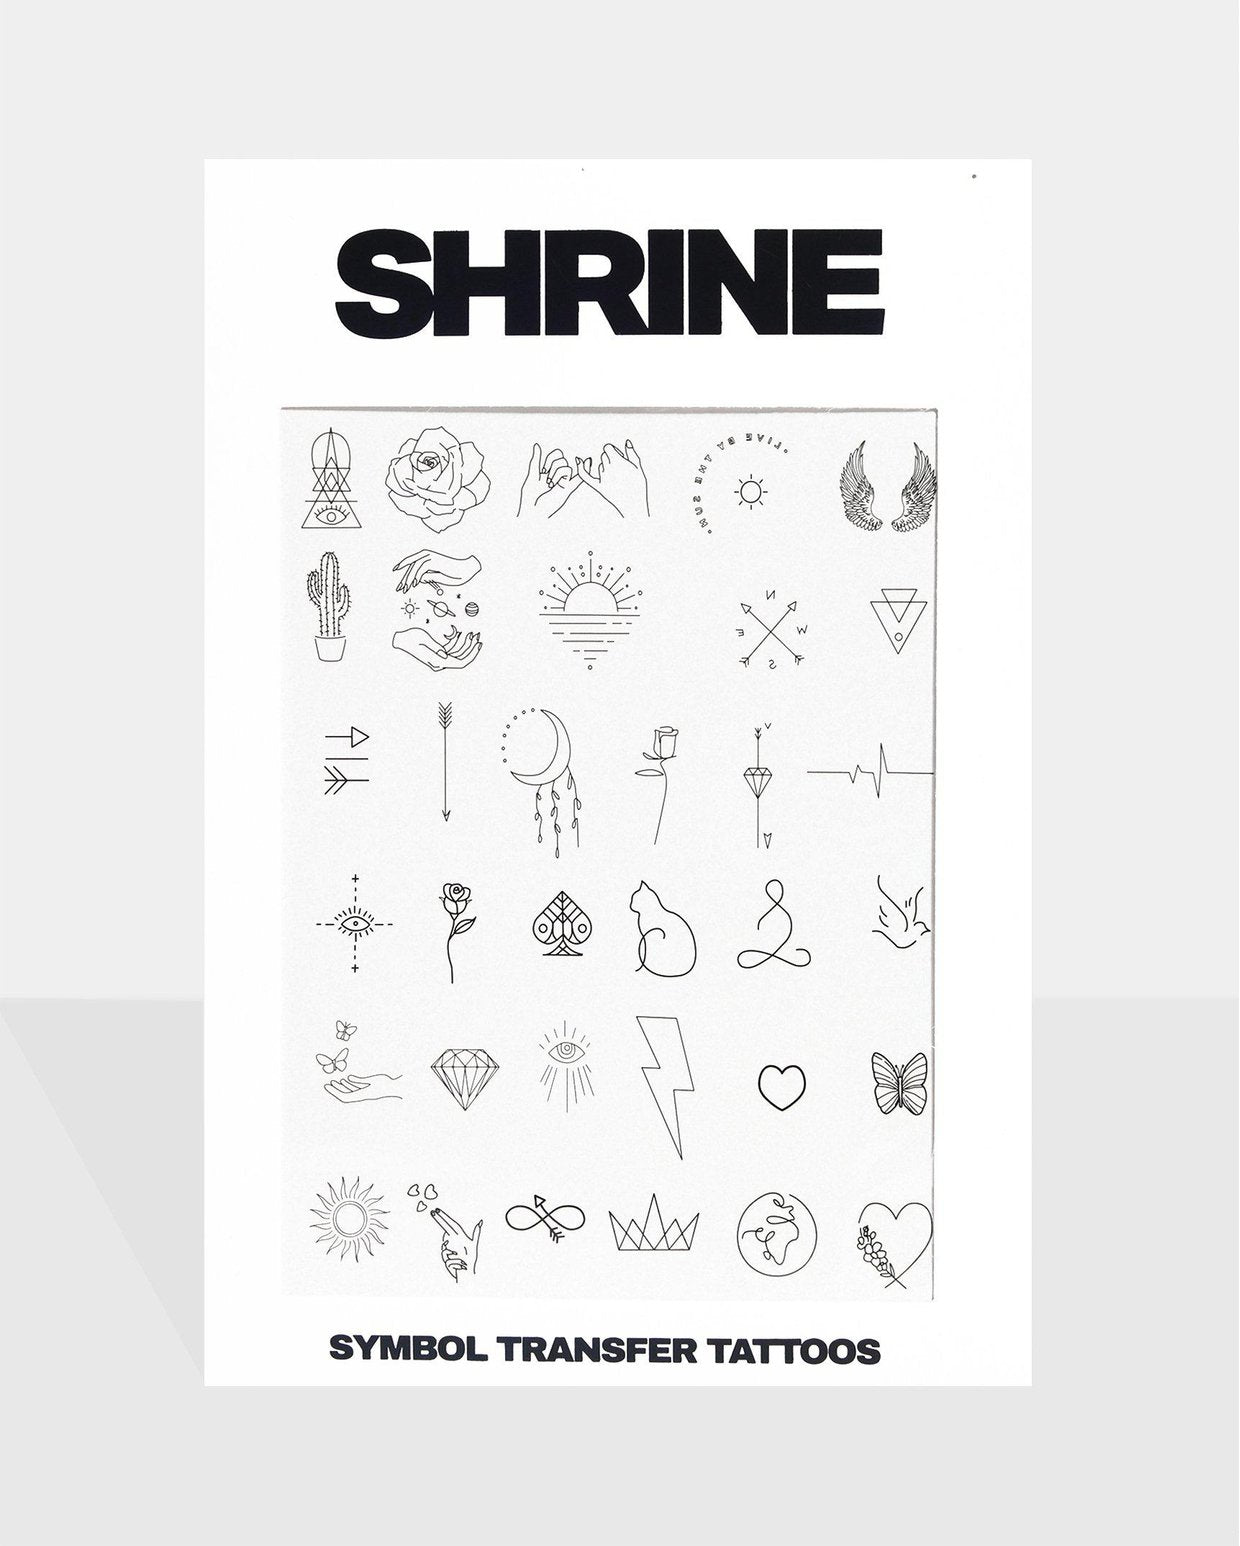 Symbol Transfer Tattoos